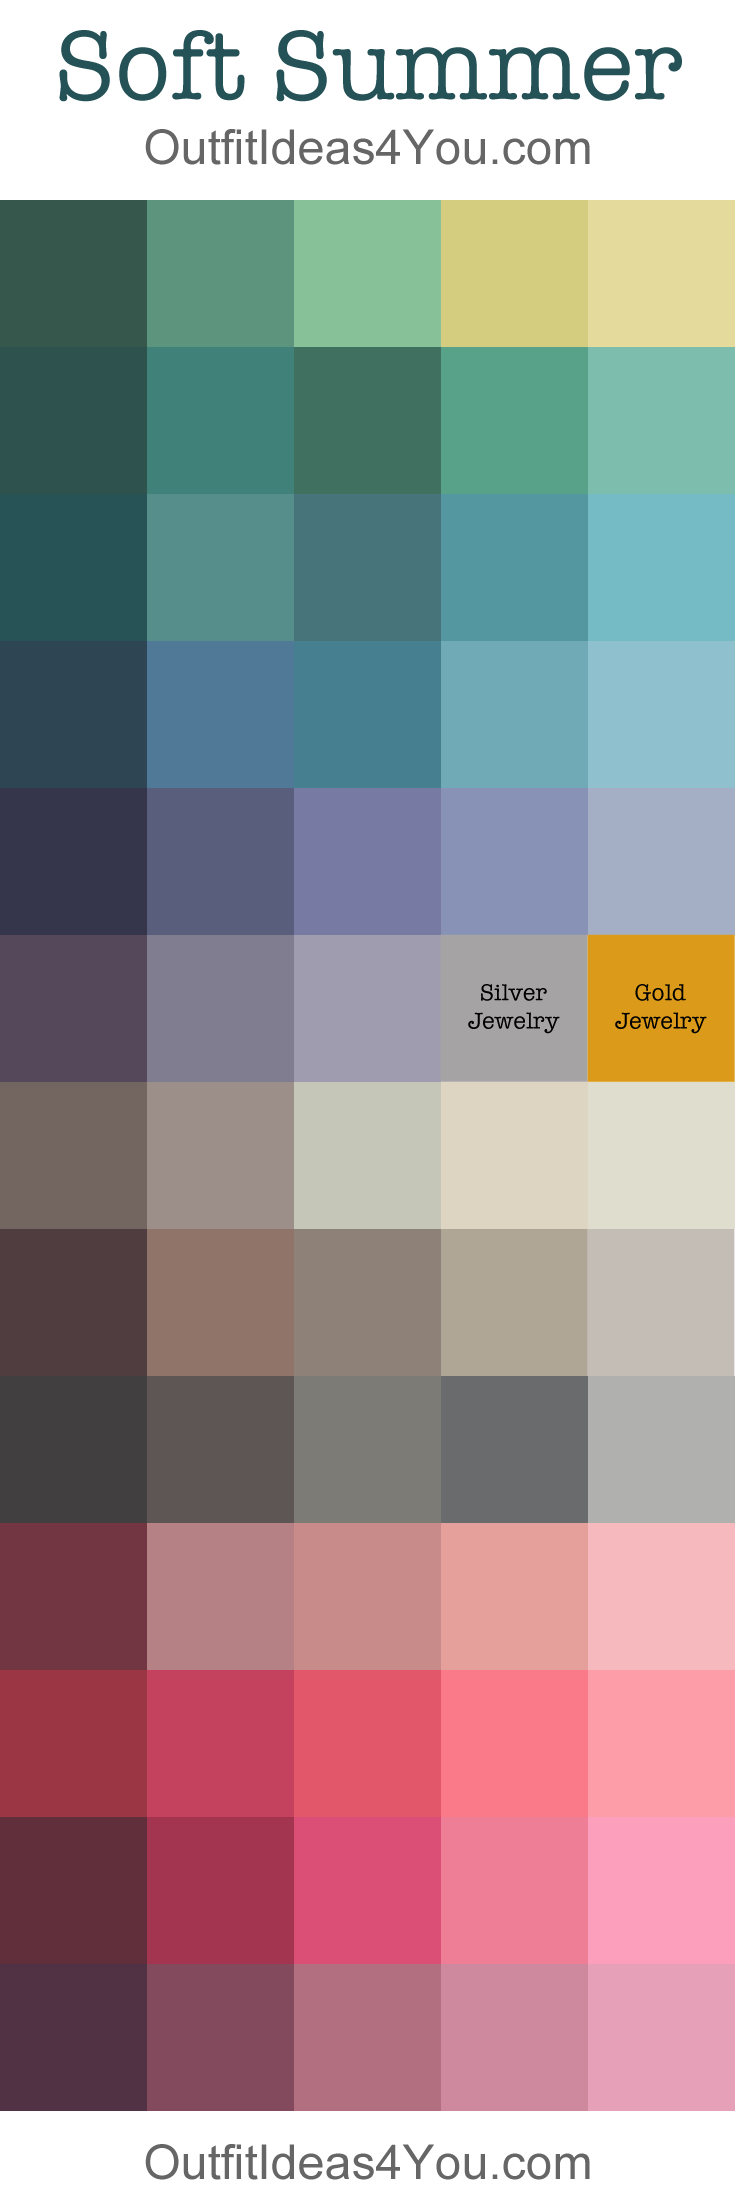 Soft Summer Color Palette Outfitideas4u